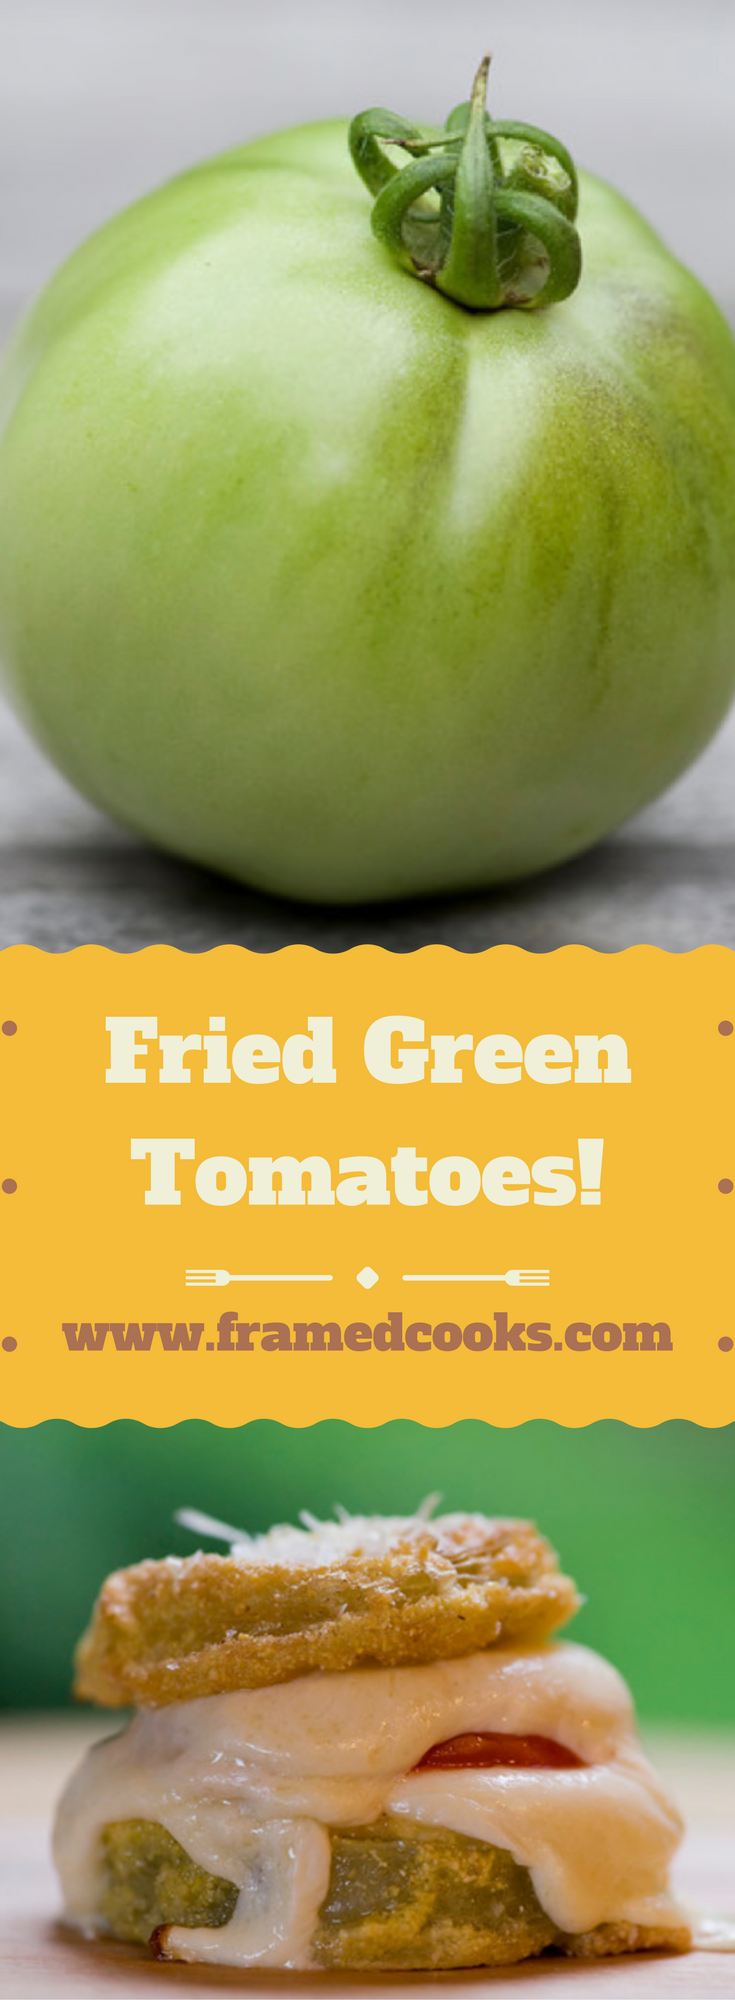 The classic fried green tomatoes recipe meets mozzarella cheese in a side dish that is good enough to be dinner all on its own!